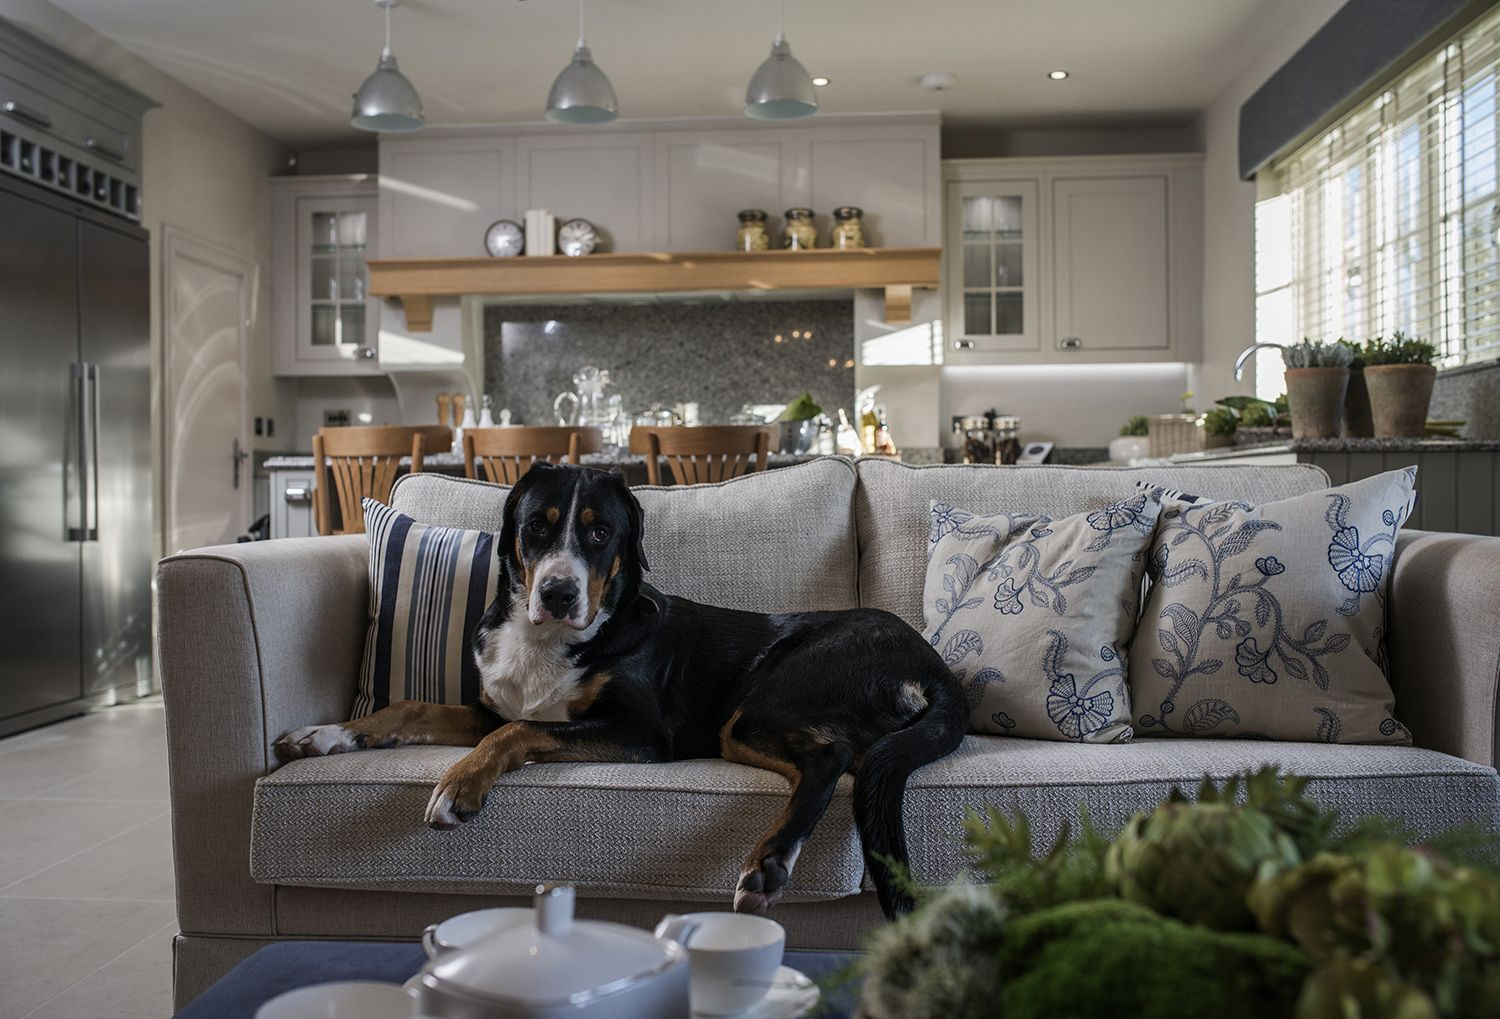 Top tips for dog-friendly interior design